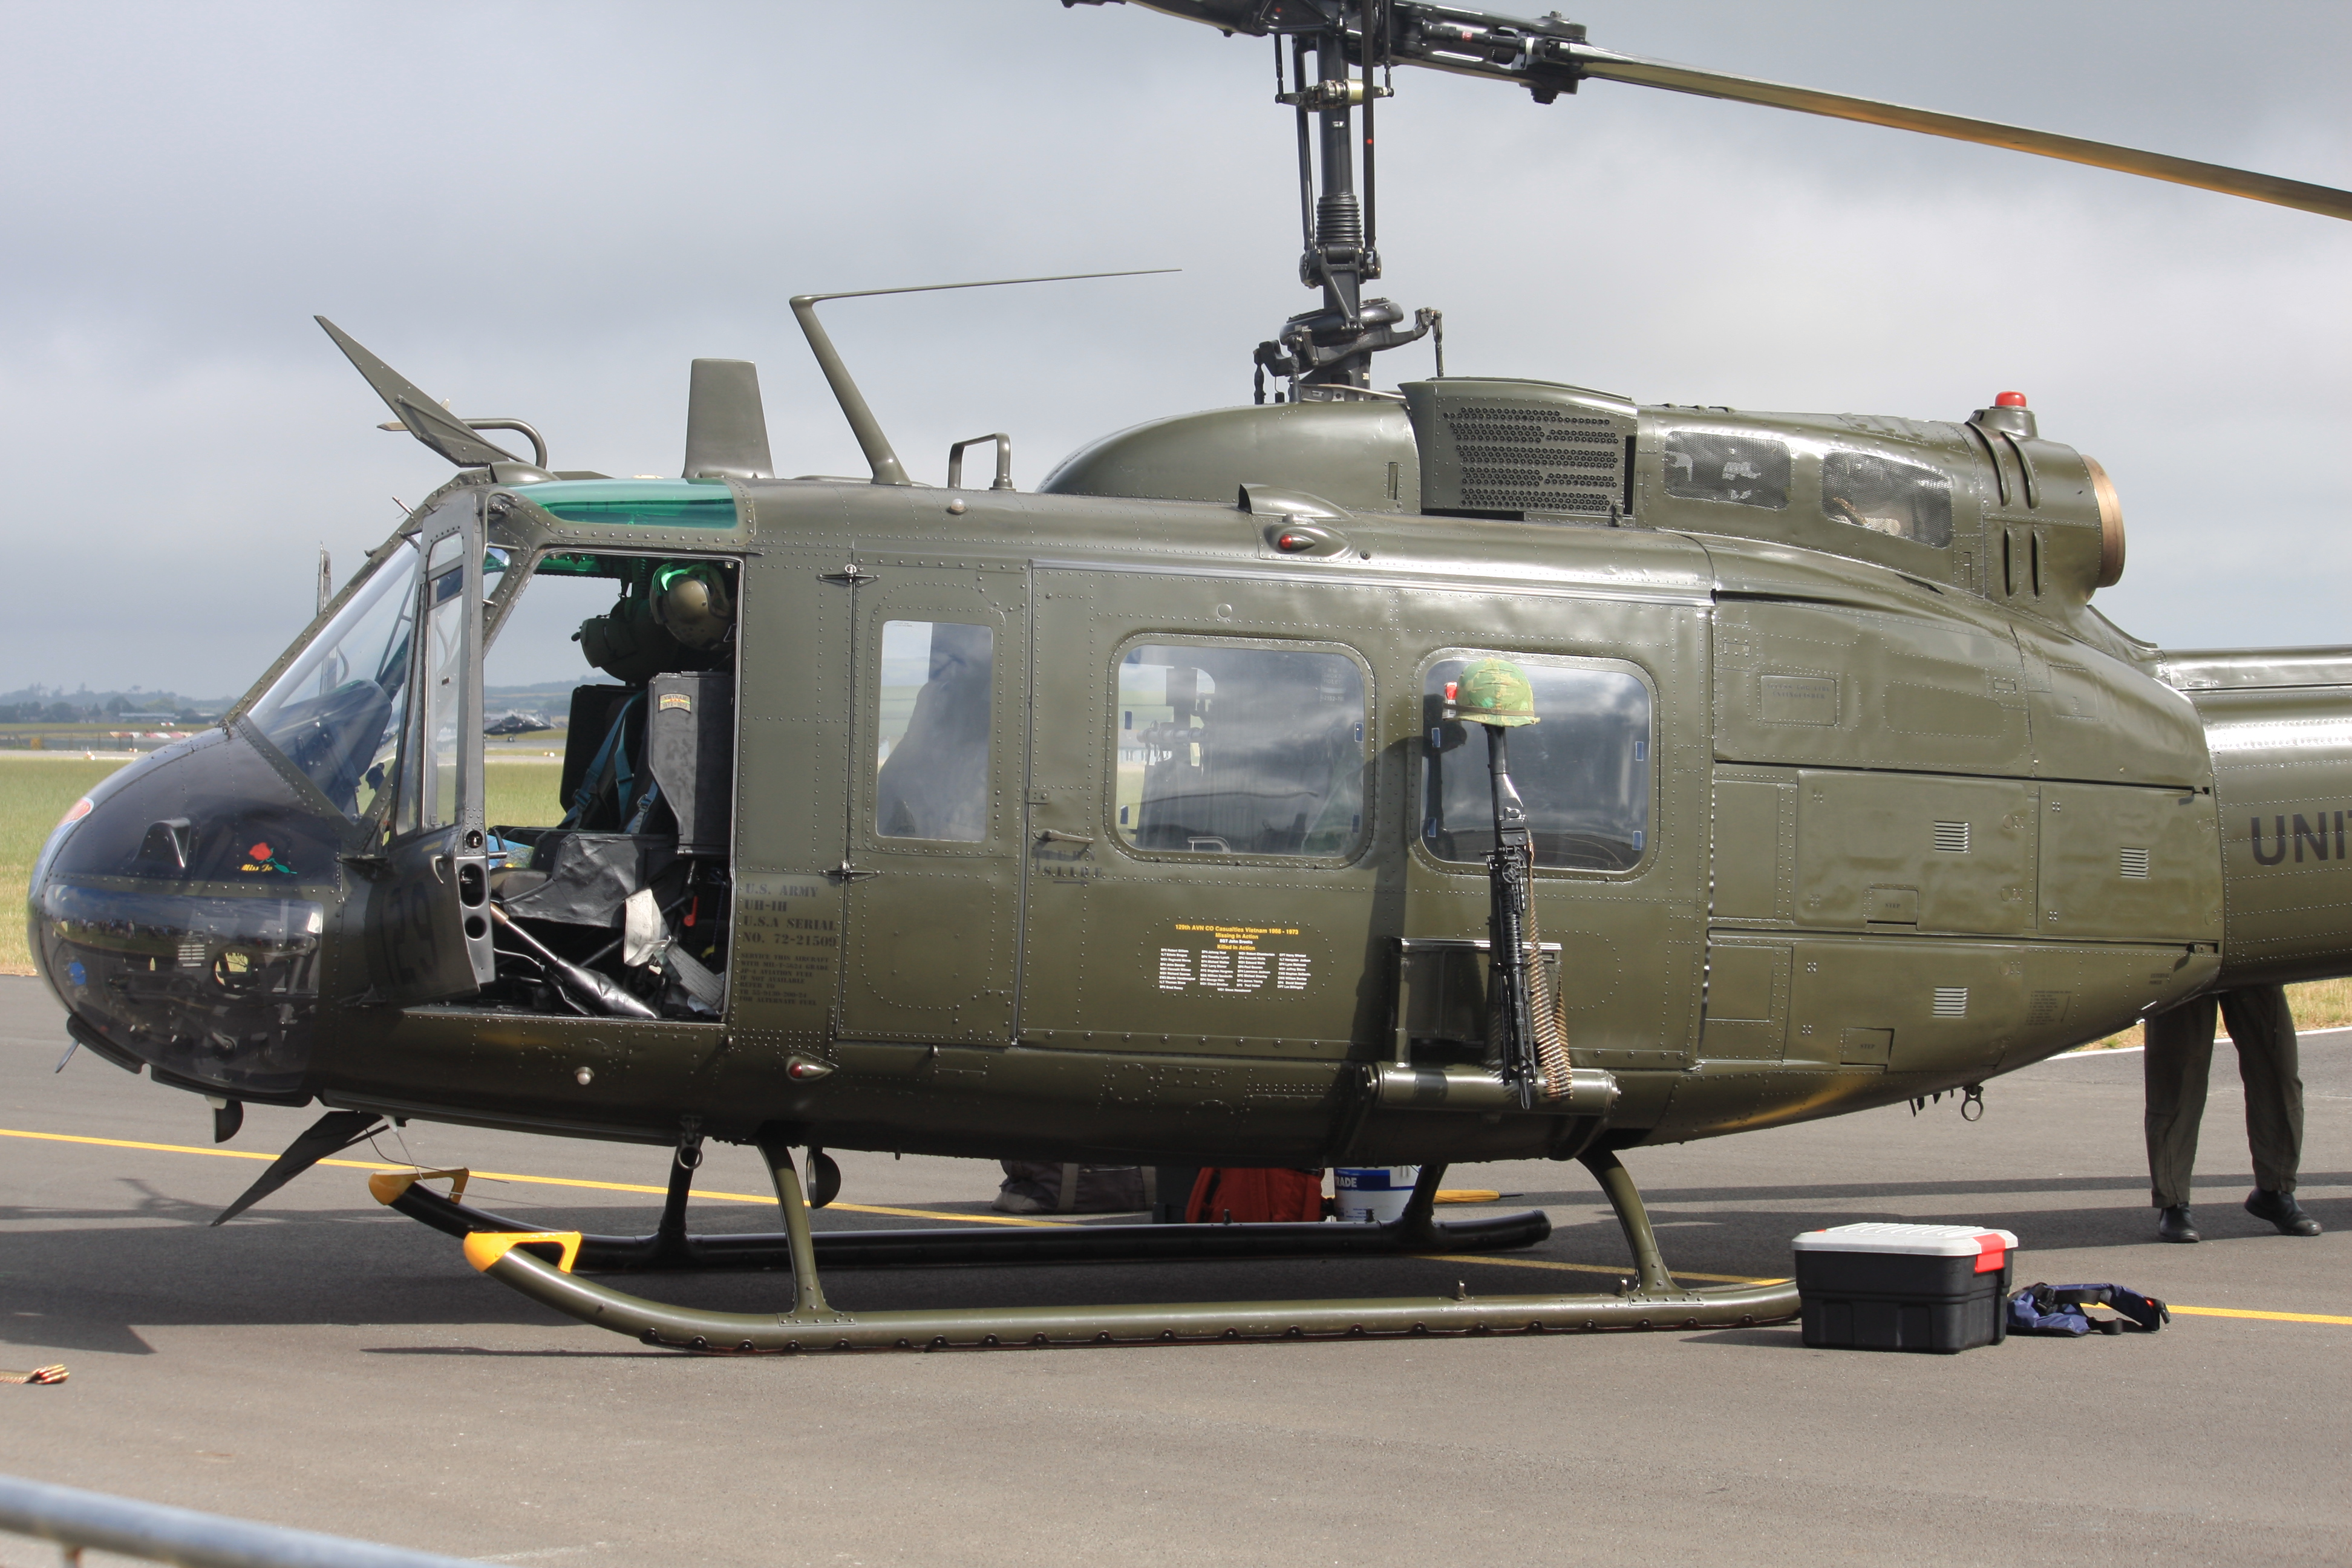 bell 205 helicopter for sale with File G Uhih   72 21509 129 Bell Uh 1h Iroquois  205   Cn 13208  Us Army   9436432746 on Bell212 usa likewise Bell 205 besides List of utility helicopters furthermore 4974 Bell Uh 1h Huey Dragon in addition H h1nam.